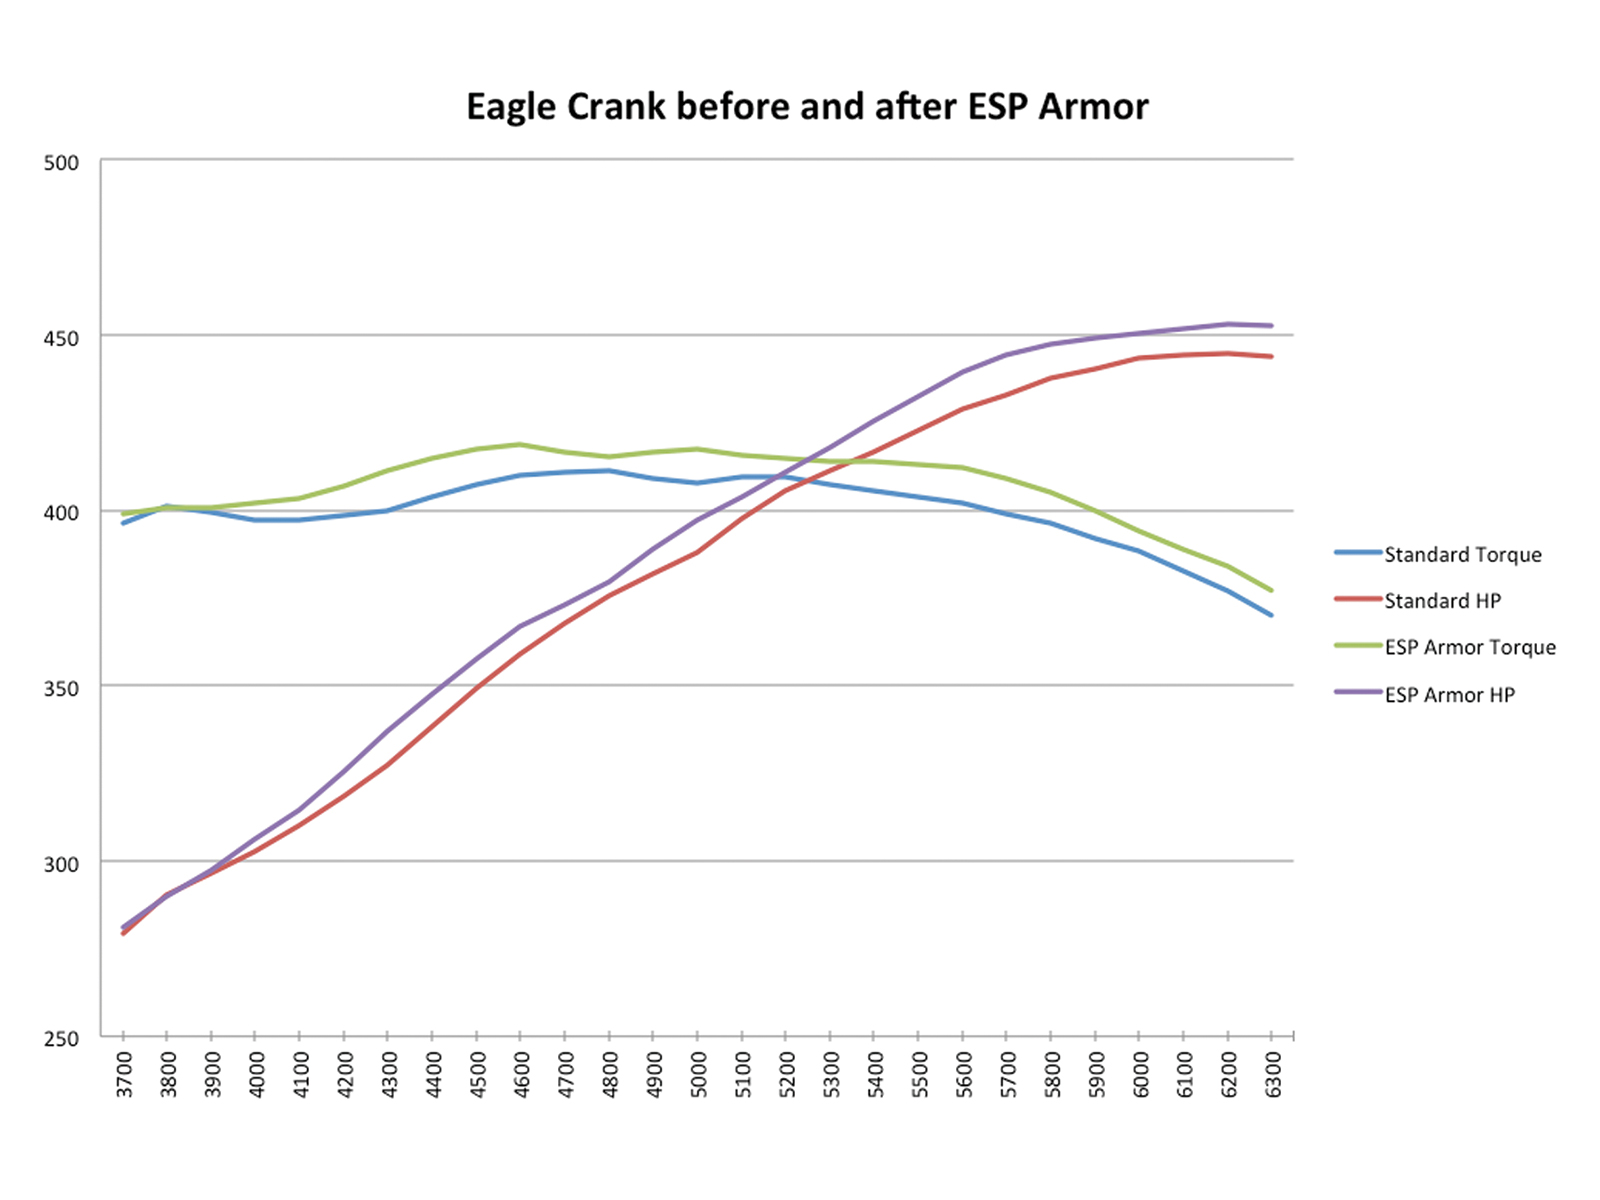 [16] And here are the results. It turns out that Eagle's ESP Armor does, in fact, provide a very real benefit to engine power. Both horsepower and torque are improved throughout the rpm range. We chose a typical on-track rpm operating range of 4,000 to 6,000 rpm, and across that span the average torque improved by nearly 8 lb-ft and the horsepower did the same. And while it isn't nearly as sexy as horsepower, we also noticed that the mirror-like surface created by the ESP Armor process helped maintain lower oil temps, which is also a definite plus.